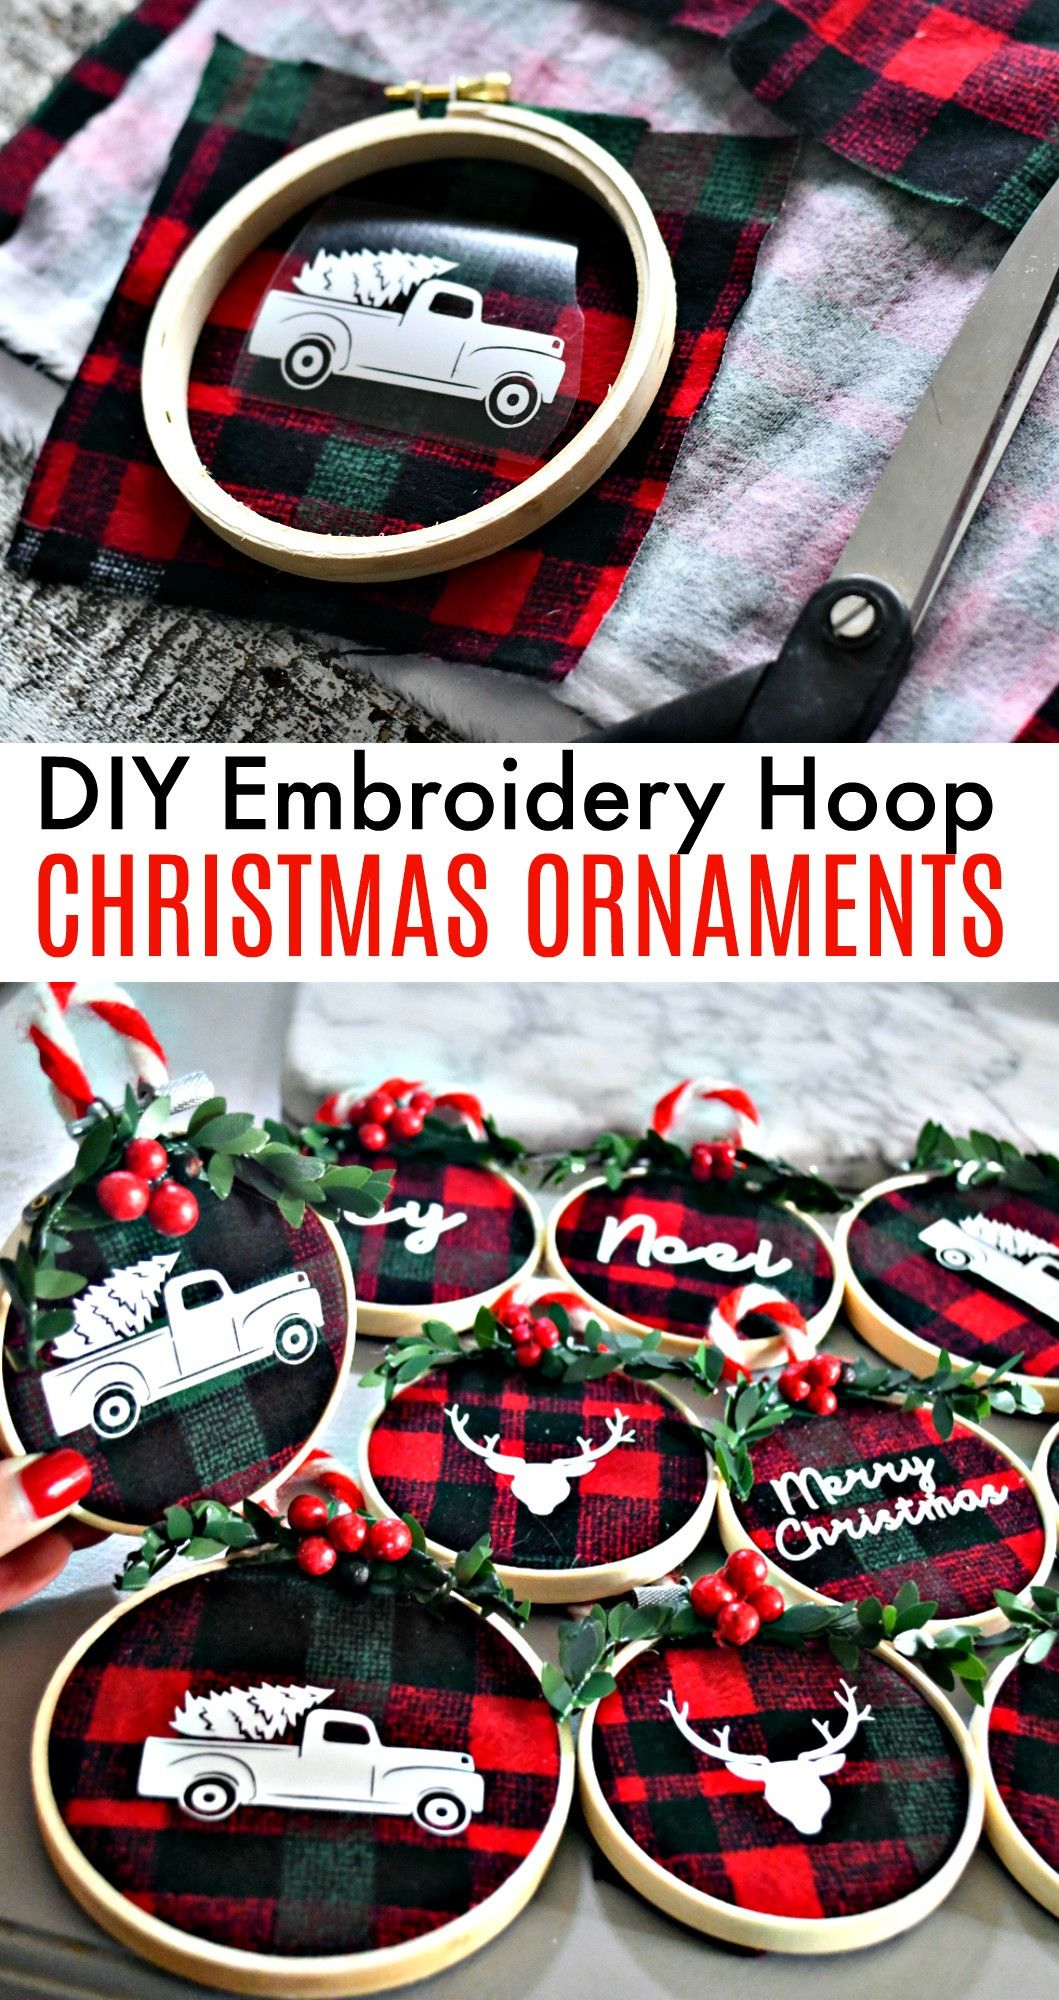 DIY Embroidery Hoop Christmas Ornaments -   23 christmas crafts presents